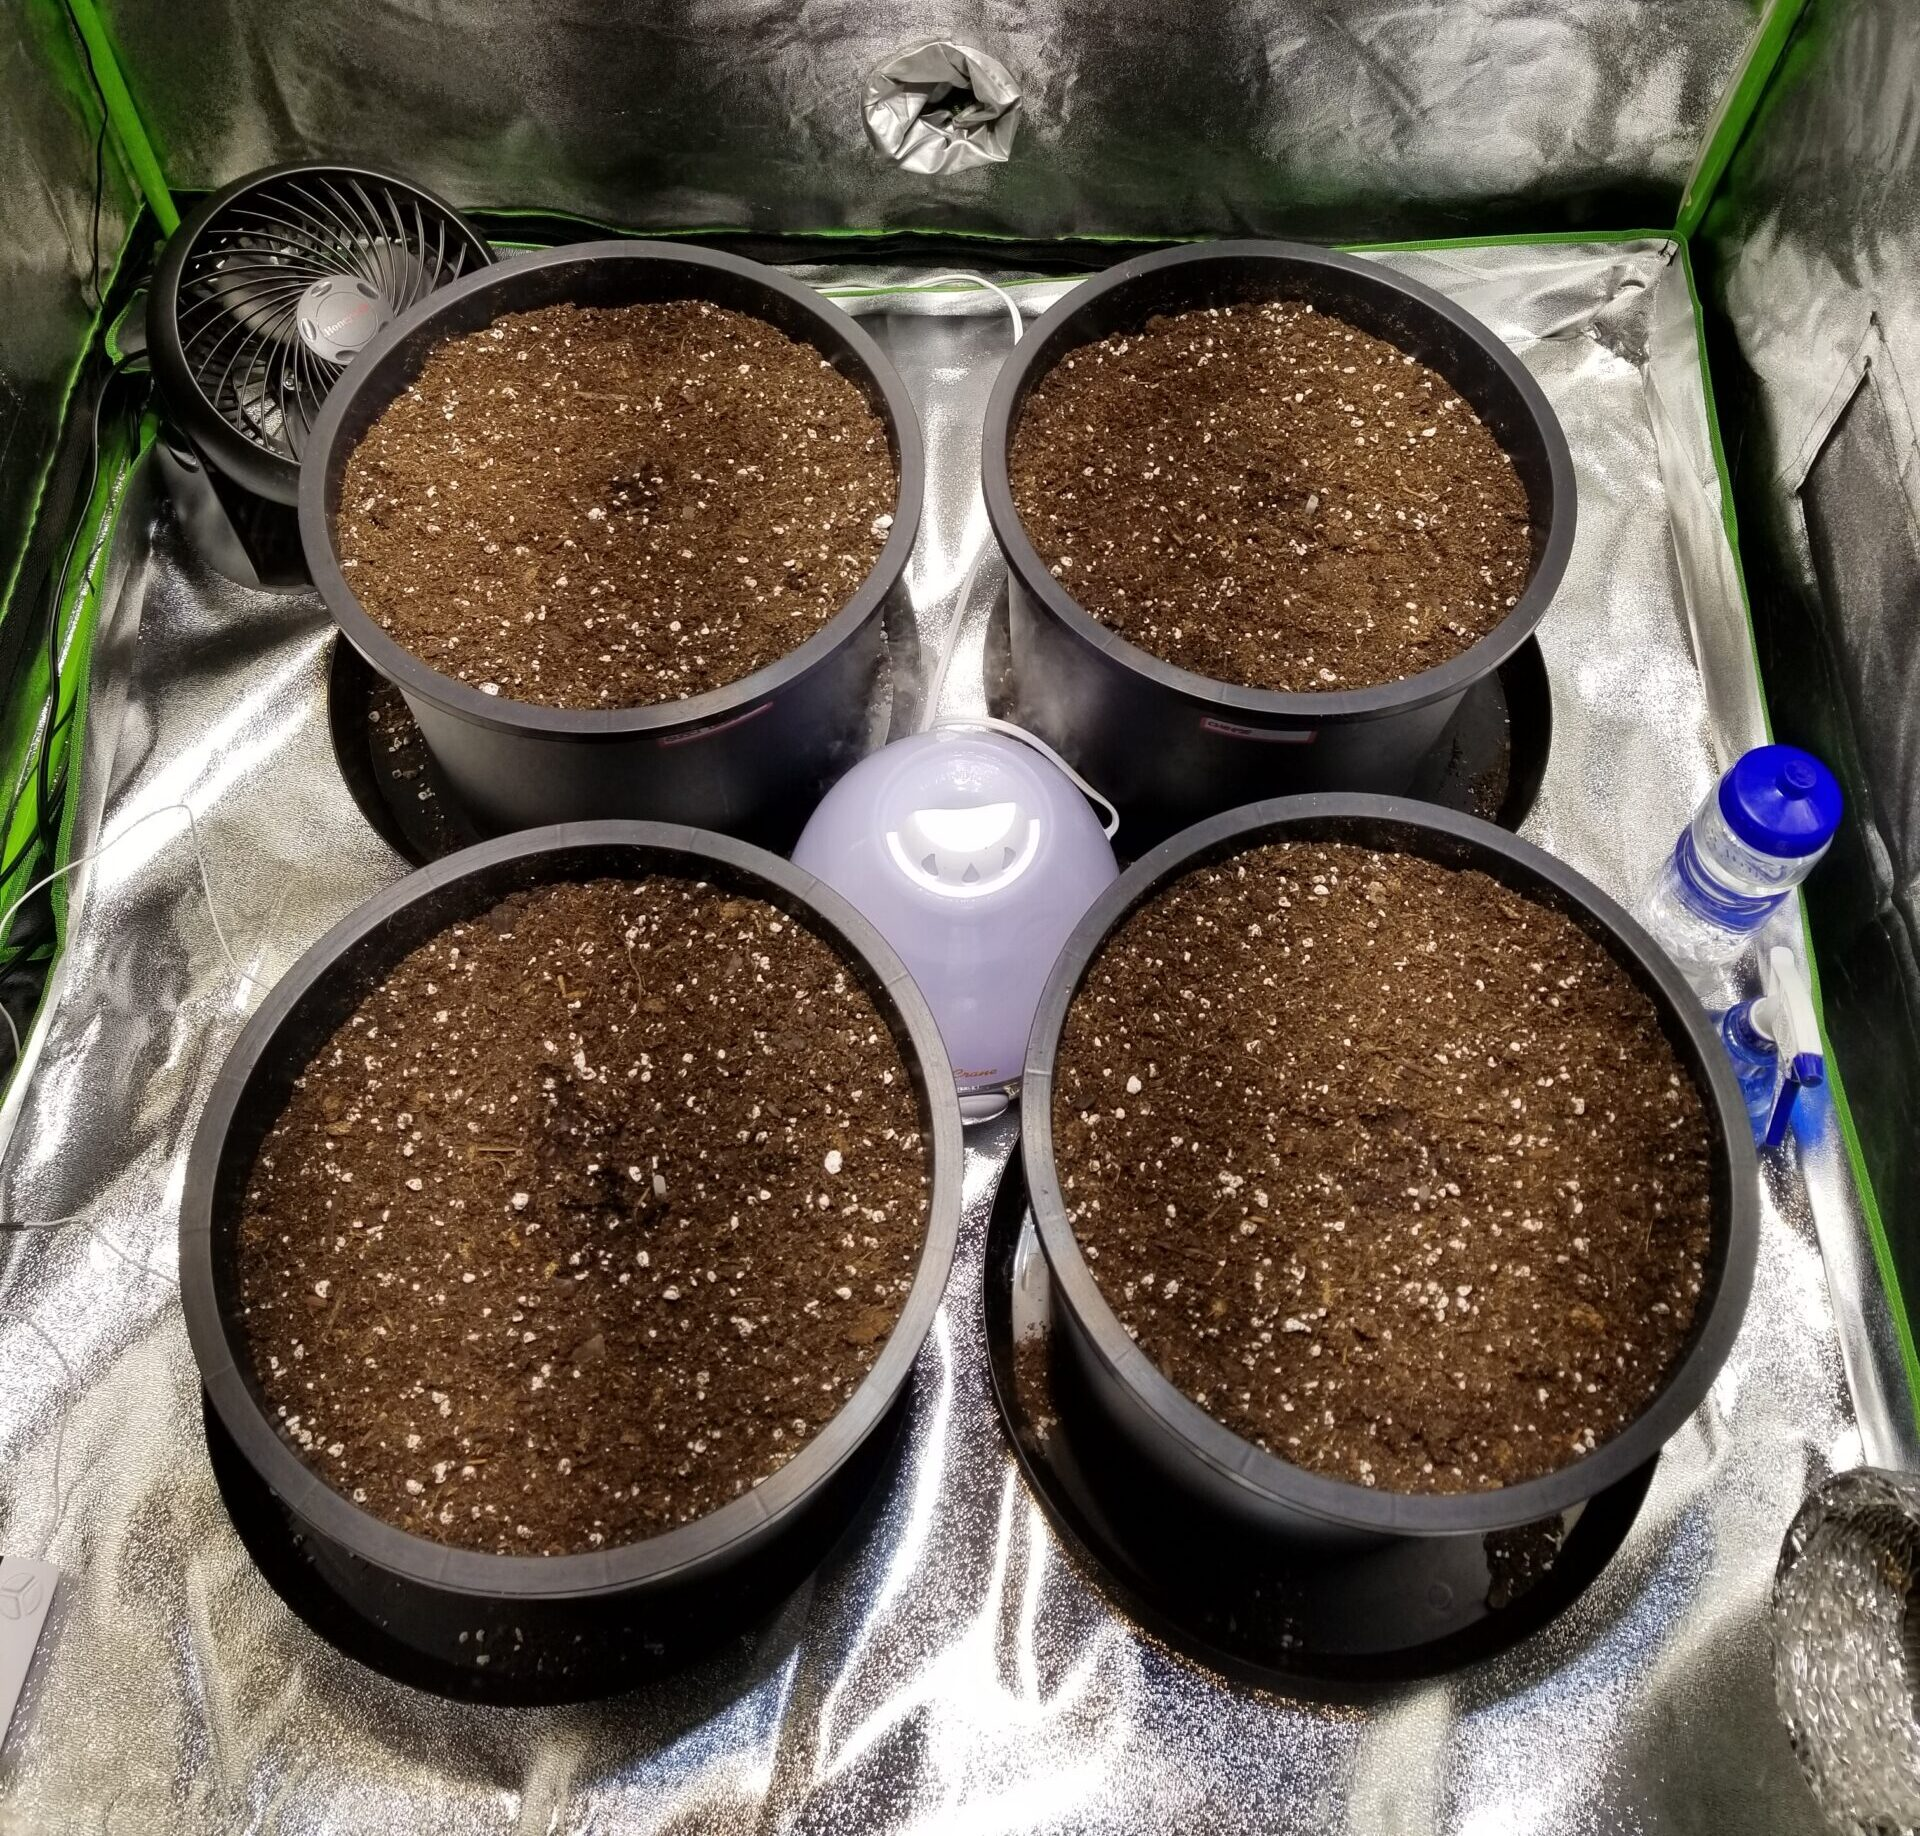 Growing Mediums for Cannabis Plants